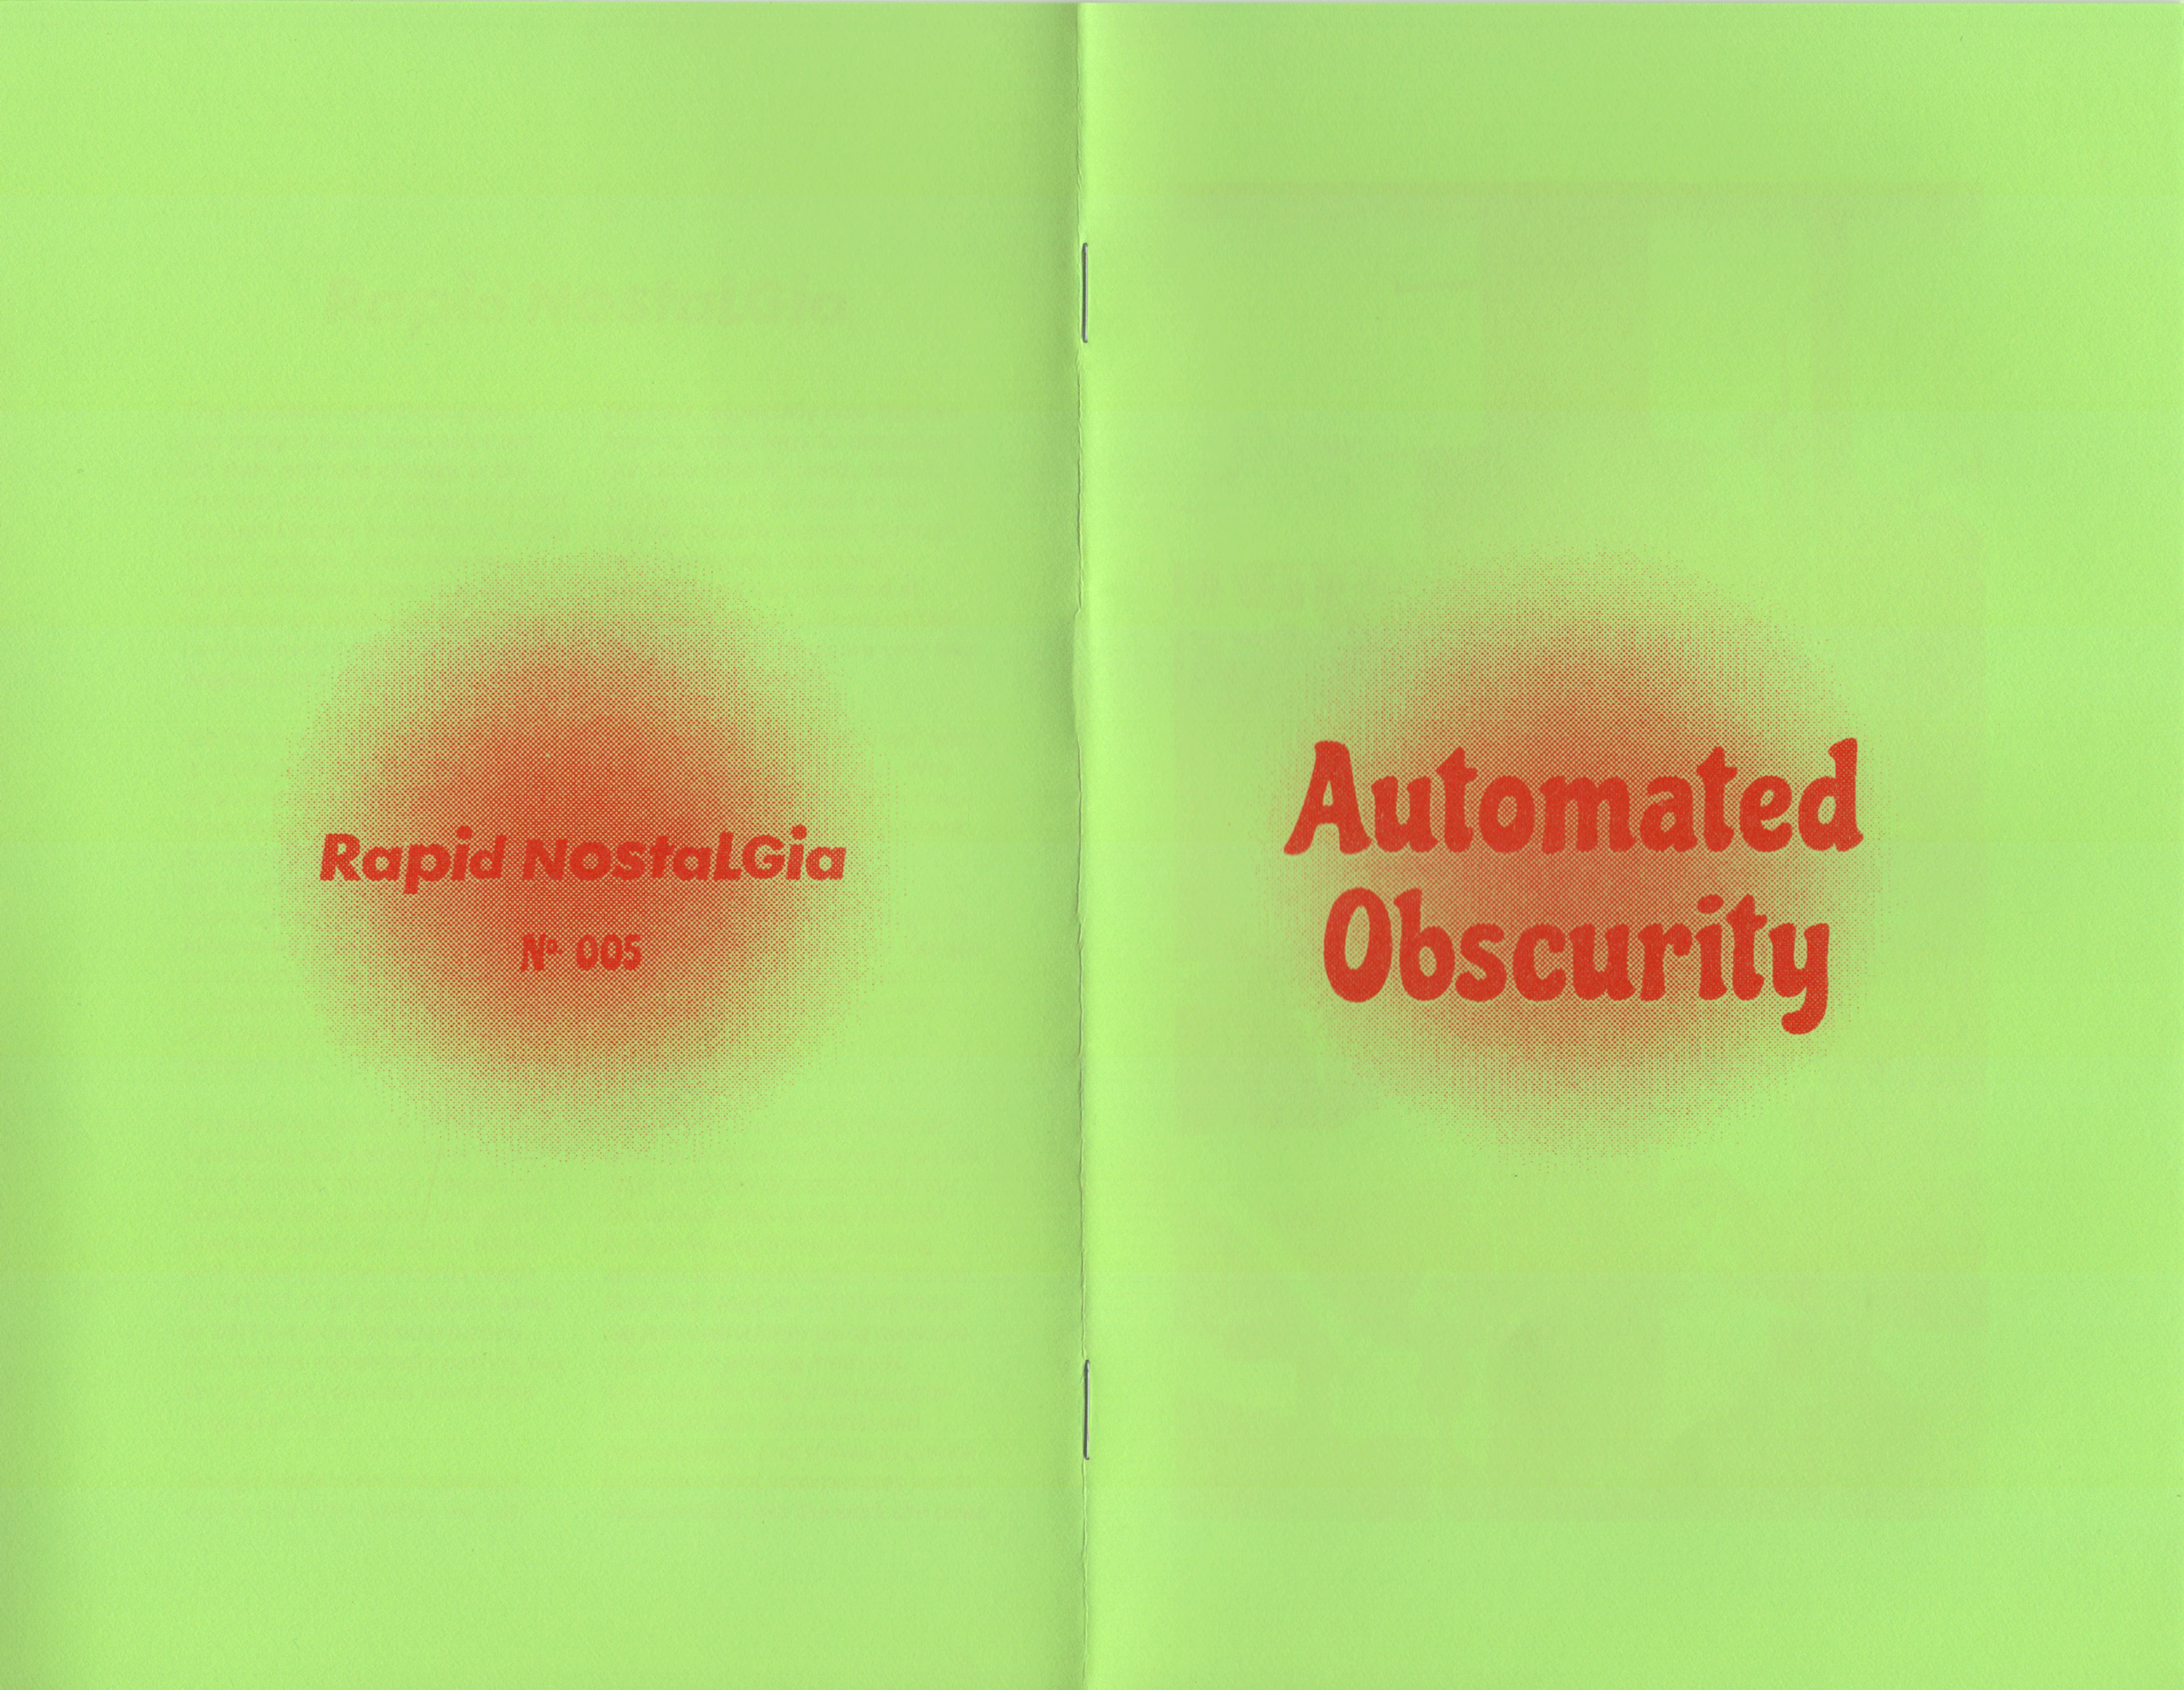 Coming Soon: Automated Obscurity - Rapid Nostalgia No. 005